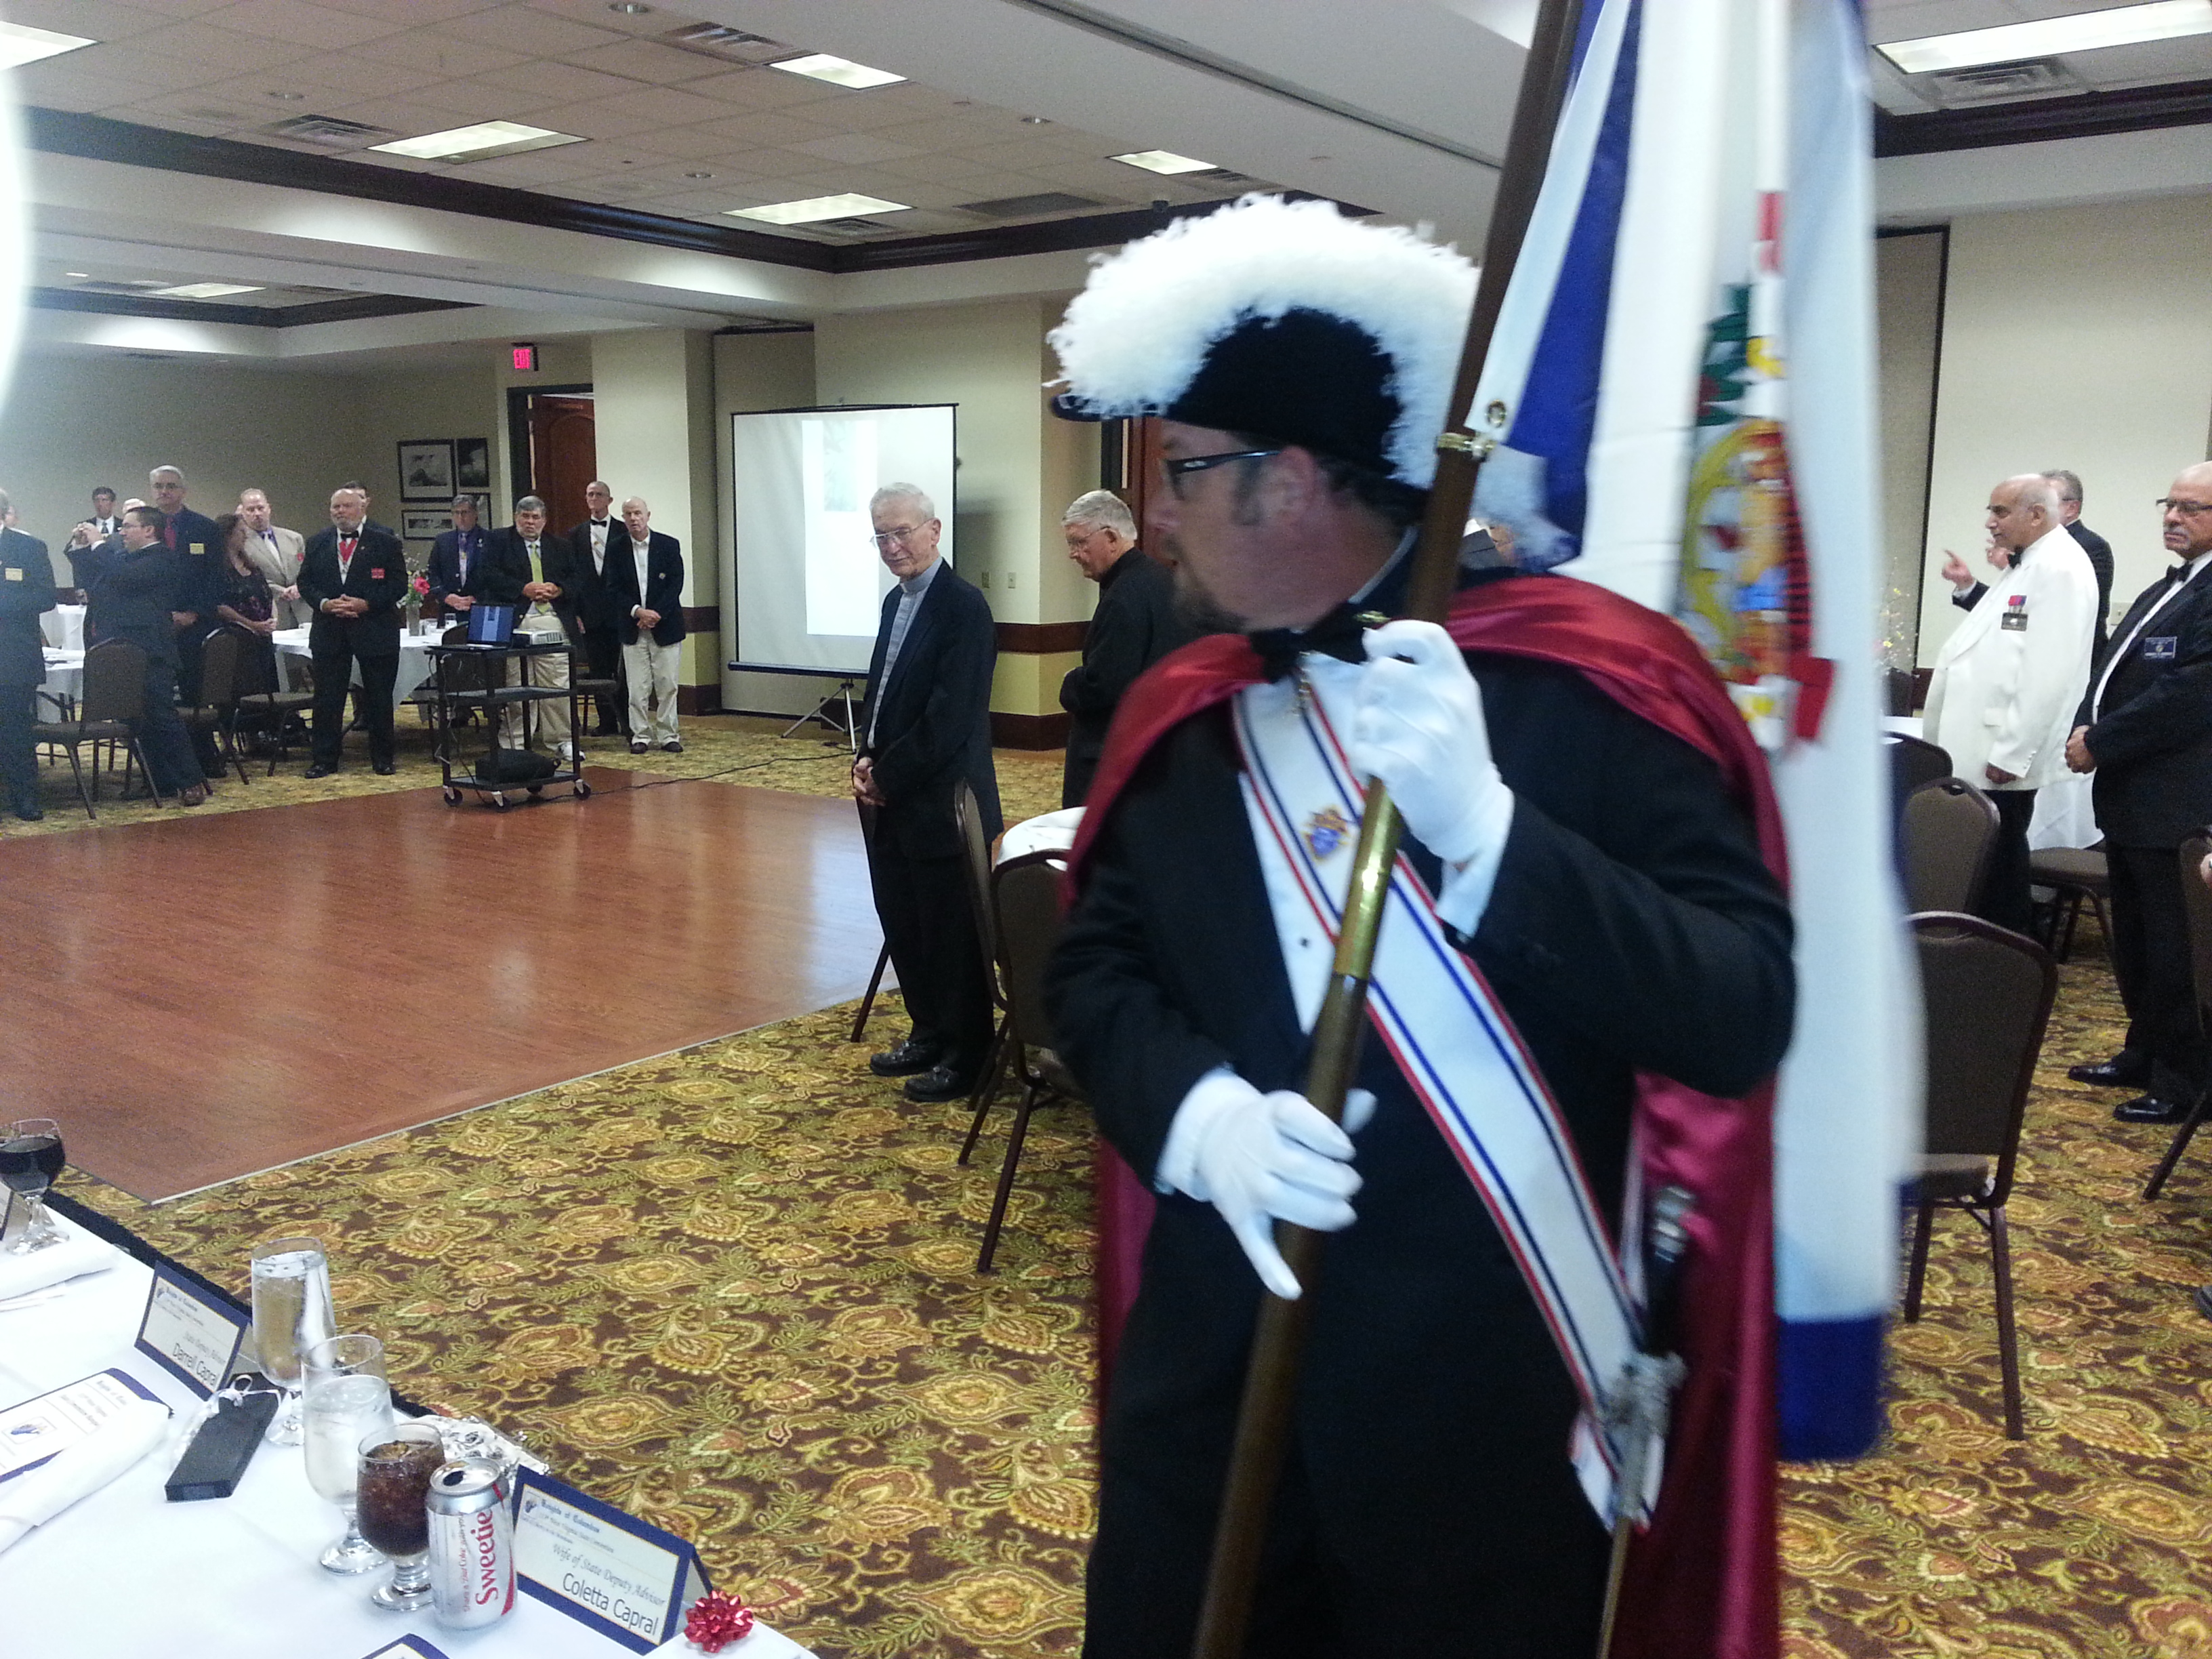 2015 WV Knights of Columbus Convention (761).jpg